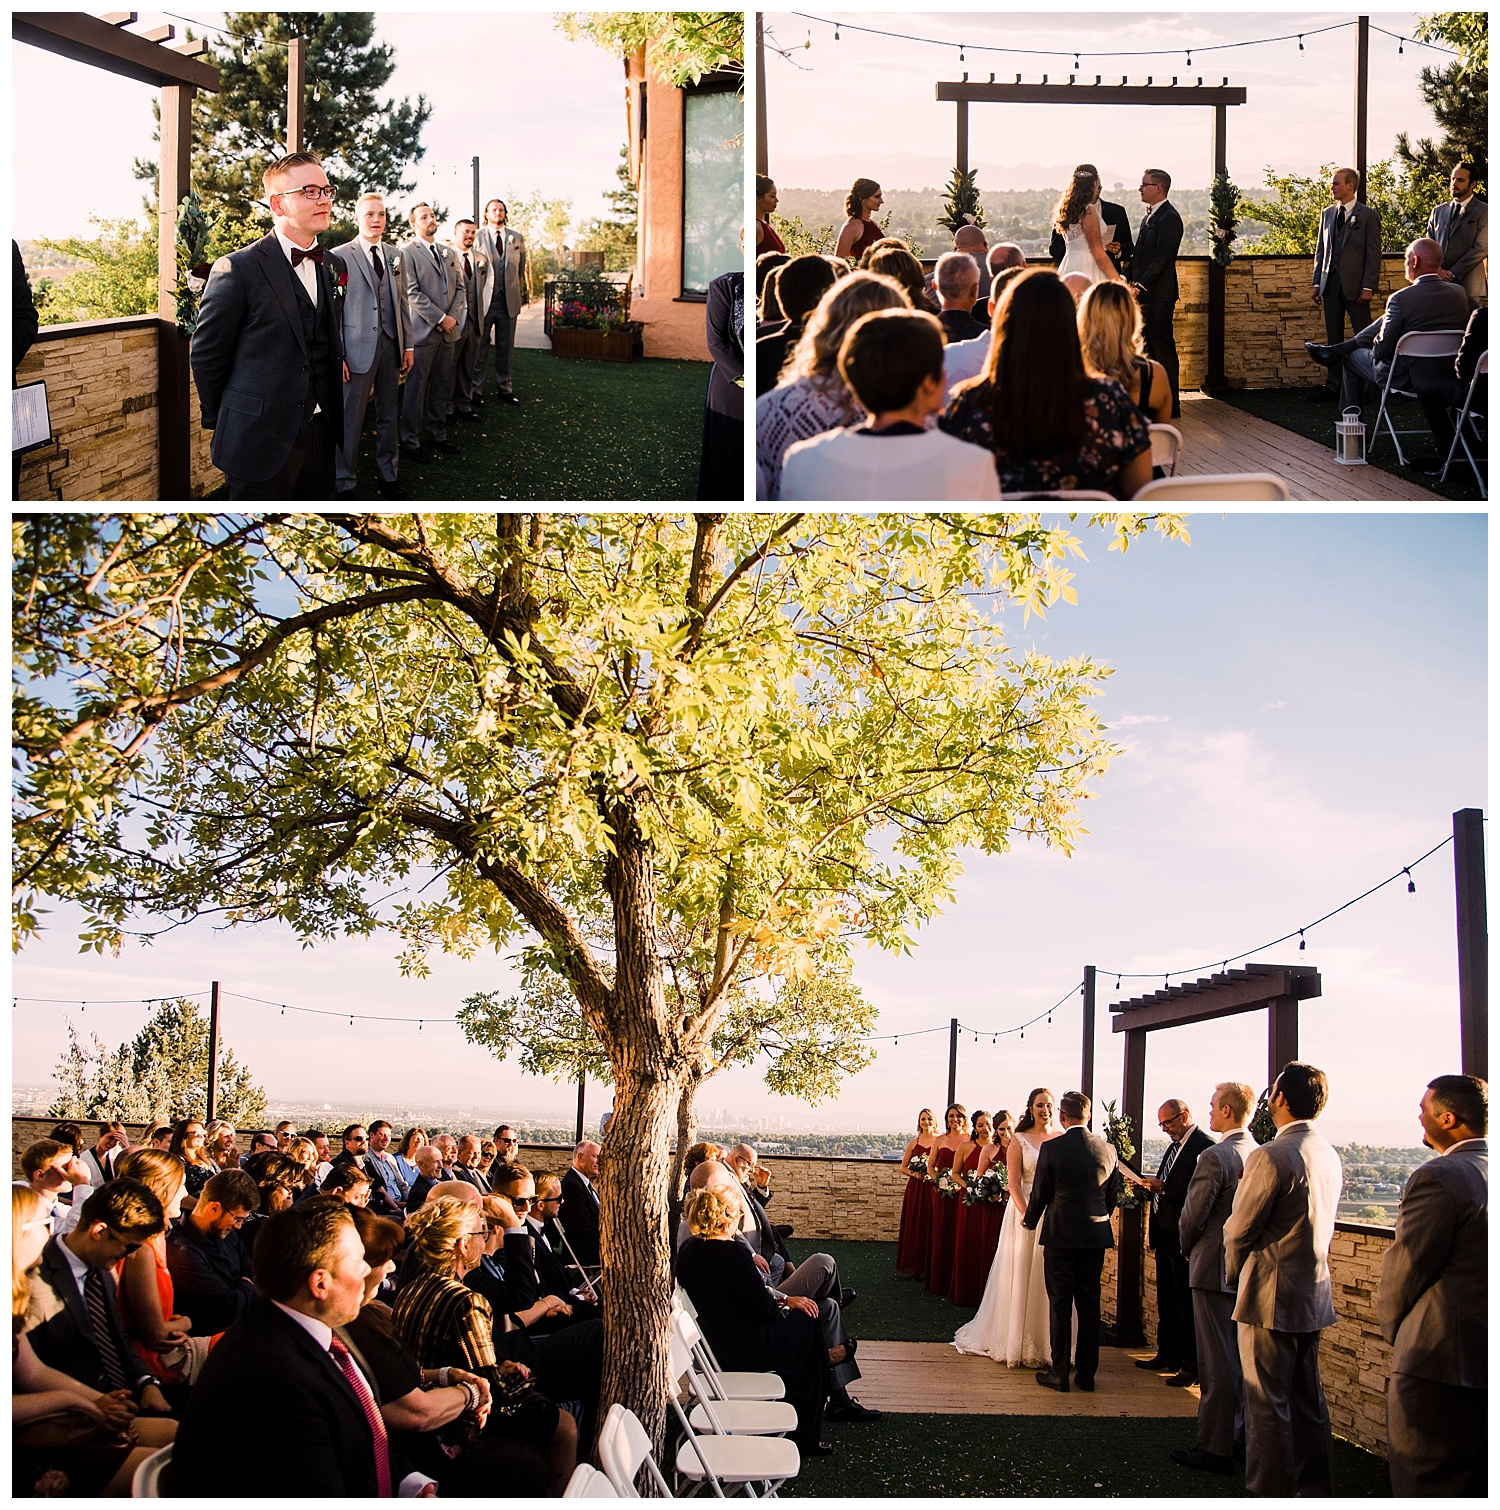 Danish_Wedding_Traditions_Denver_Colorado_Photographer_Wedgewood_Brittany_Hill_Apollo_Fields_015.jpg